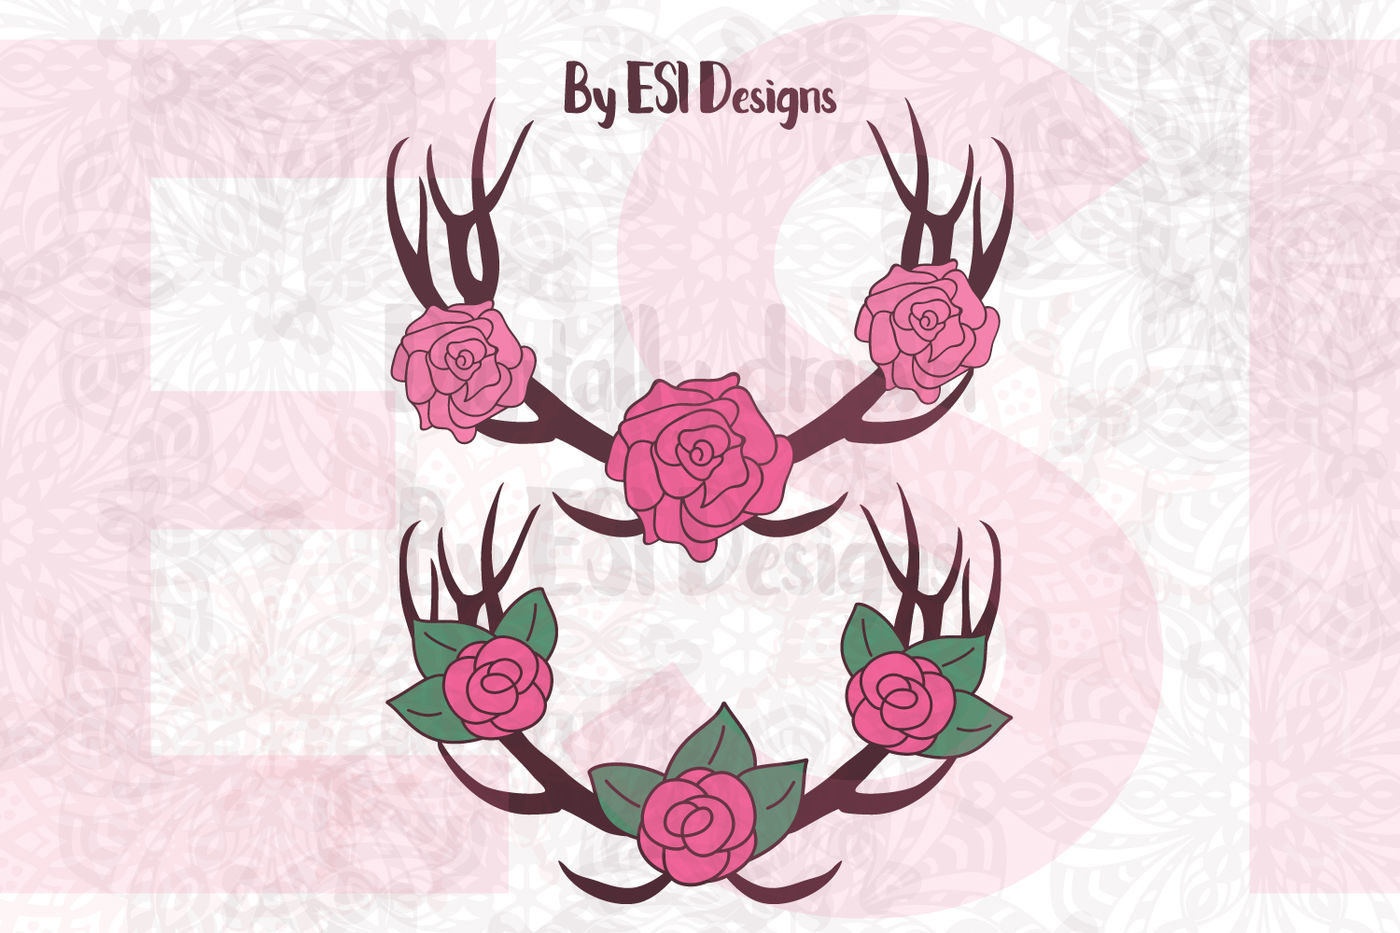 photograph regarding Printable Deer Antlers identify Boho Structure, Deer antlers and Rose - SVG, DXF, EPS PNG